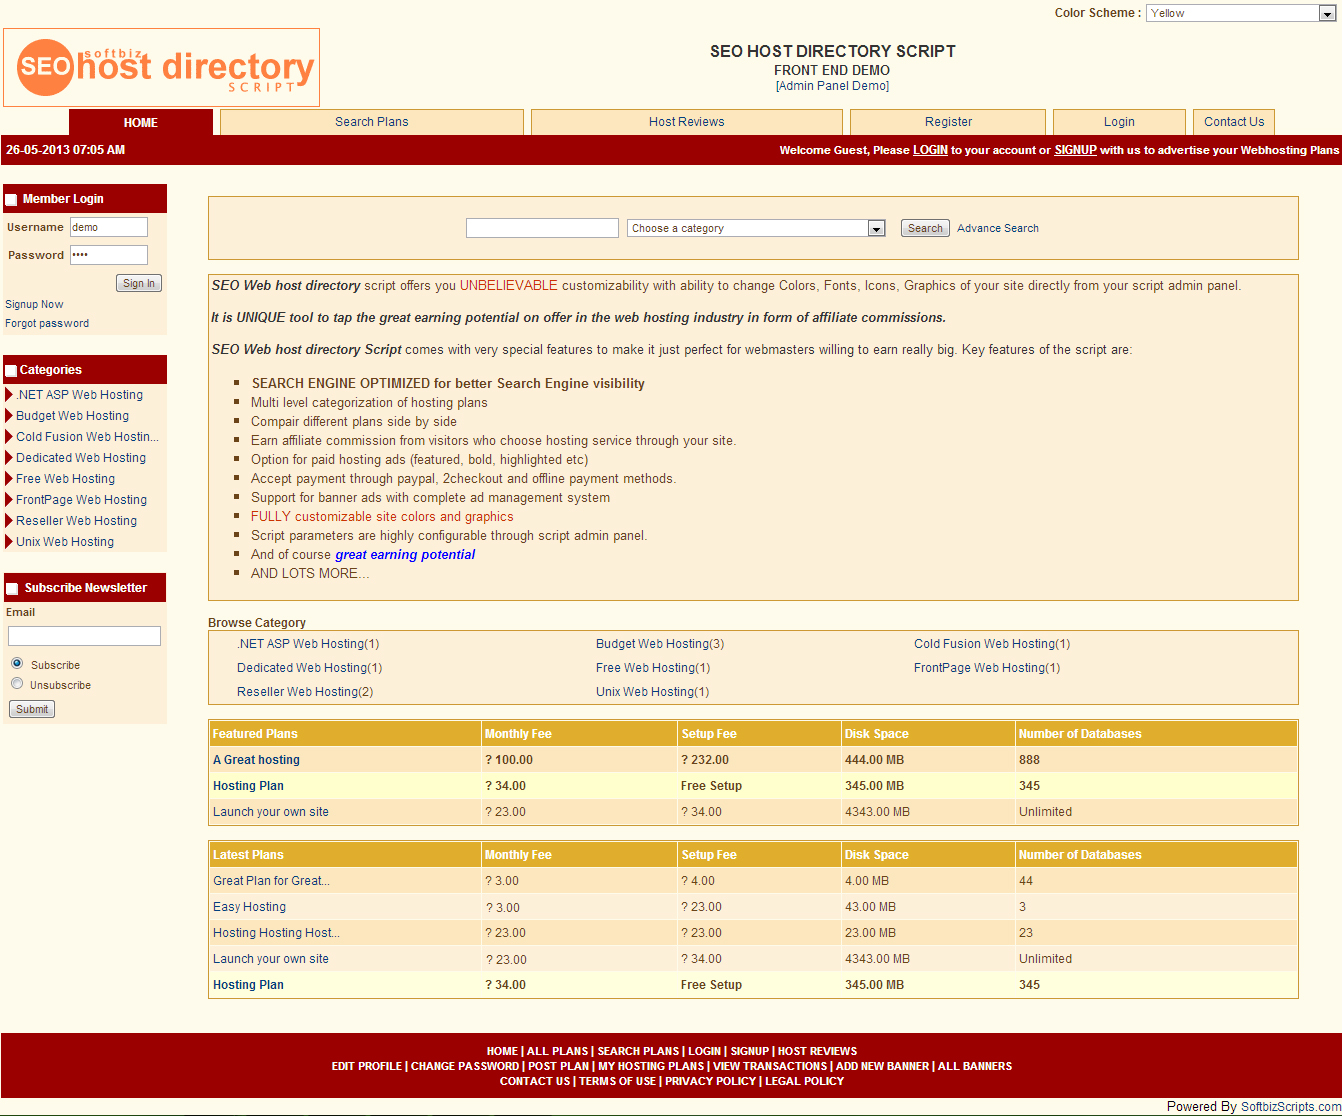 SEO Host Directory Script Screenshot